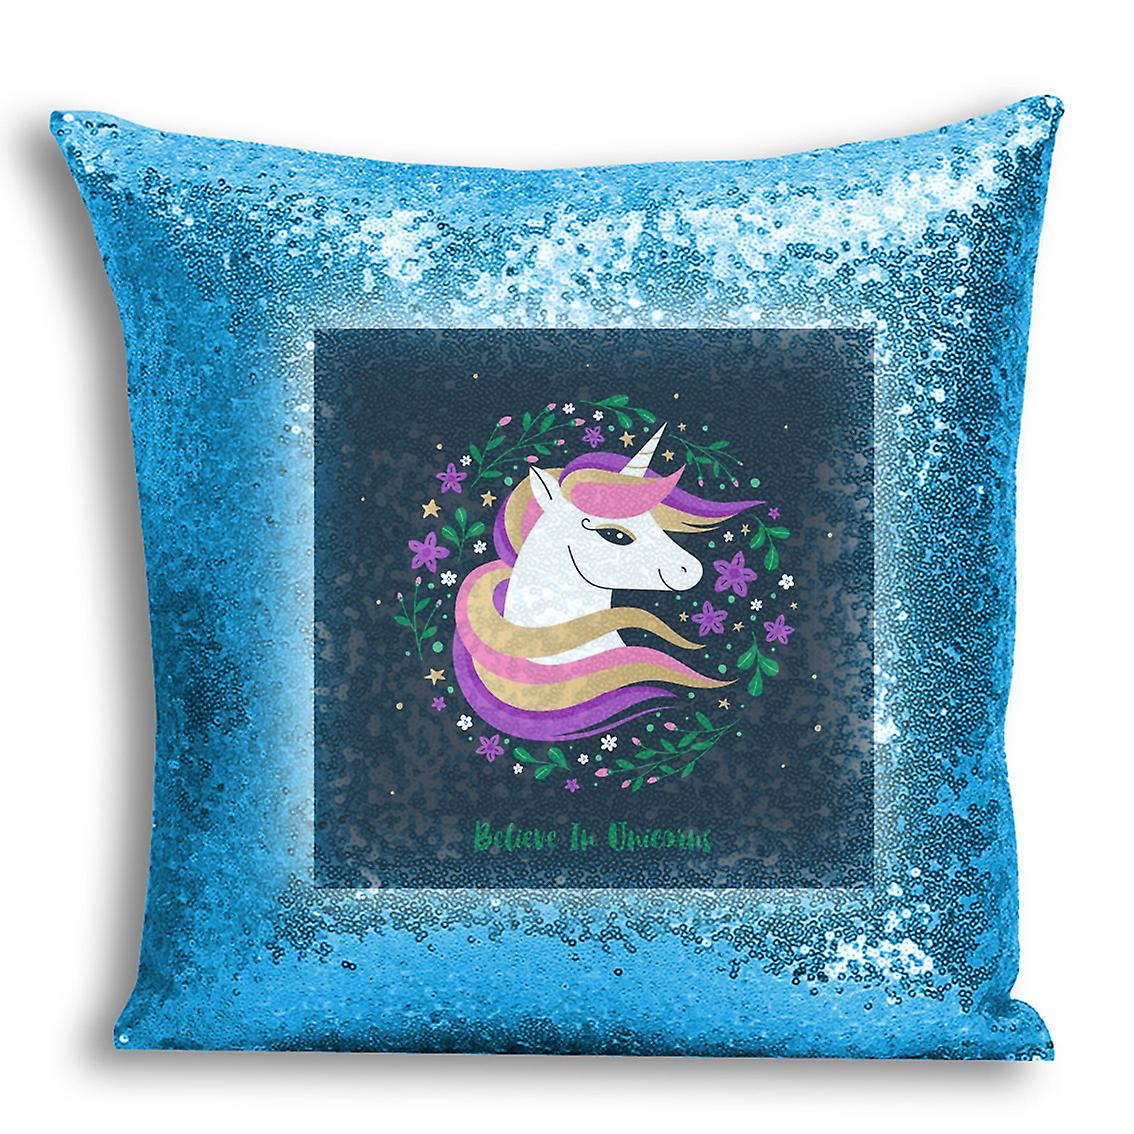 tronixsUnicorn Printed Cover Design CushionPillow I 10 With Inserted Home Decor Sequin For Blue CxWoderB